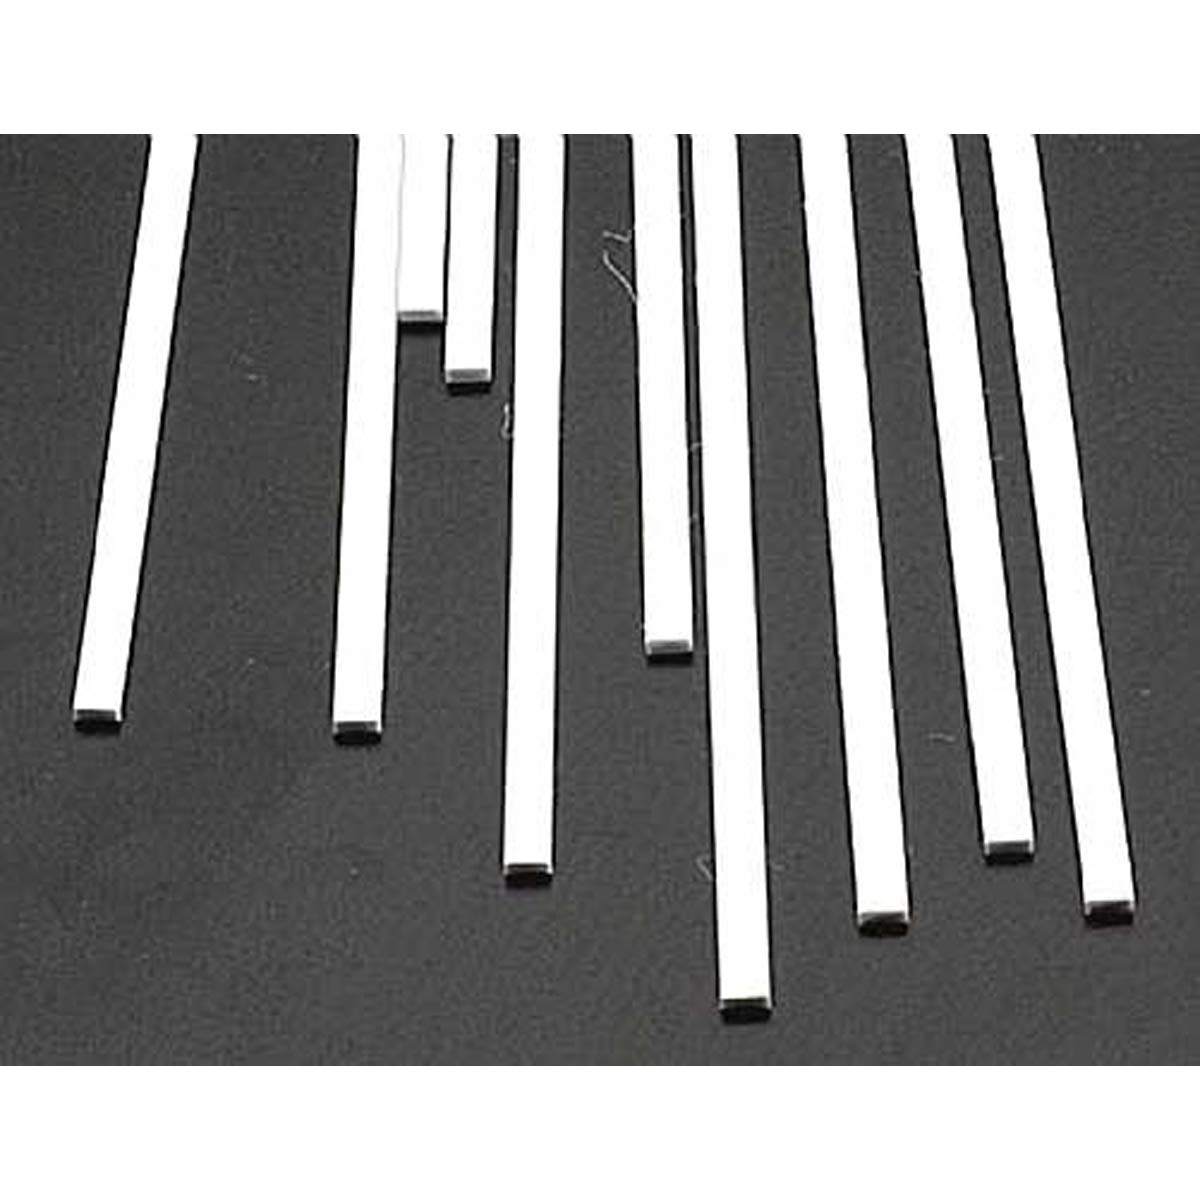 Plastruct Max 46% OFF MS-612 Complete Free Shipping Rect Strip 10 .060x.125 PLS90756